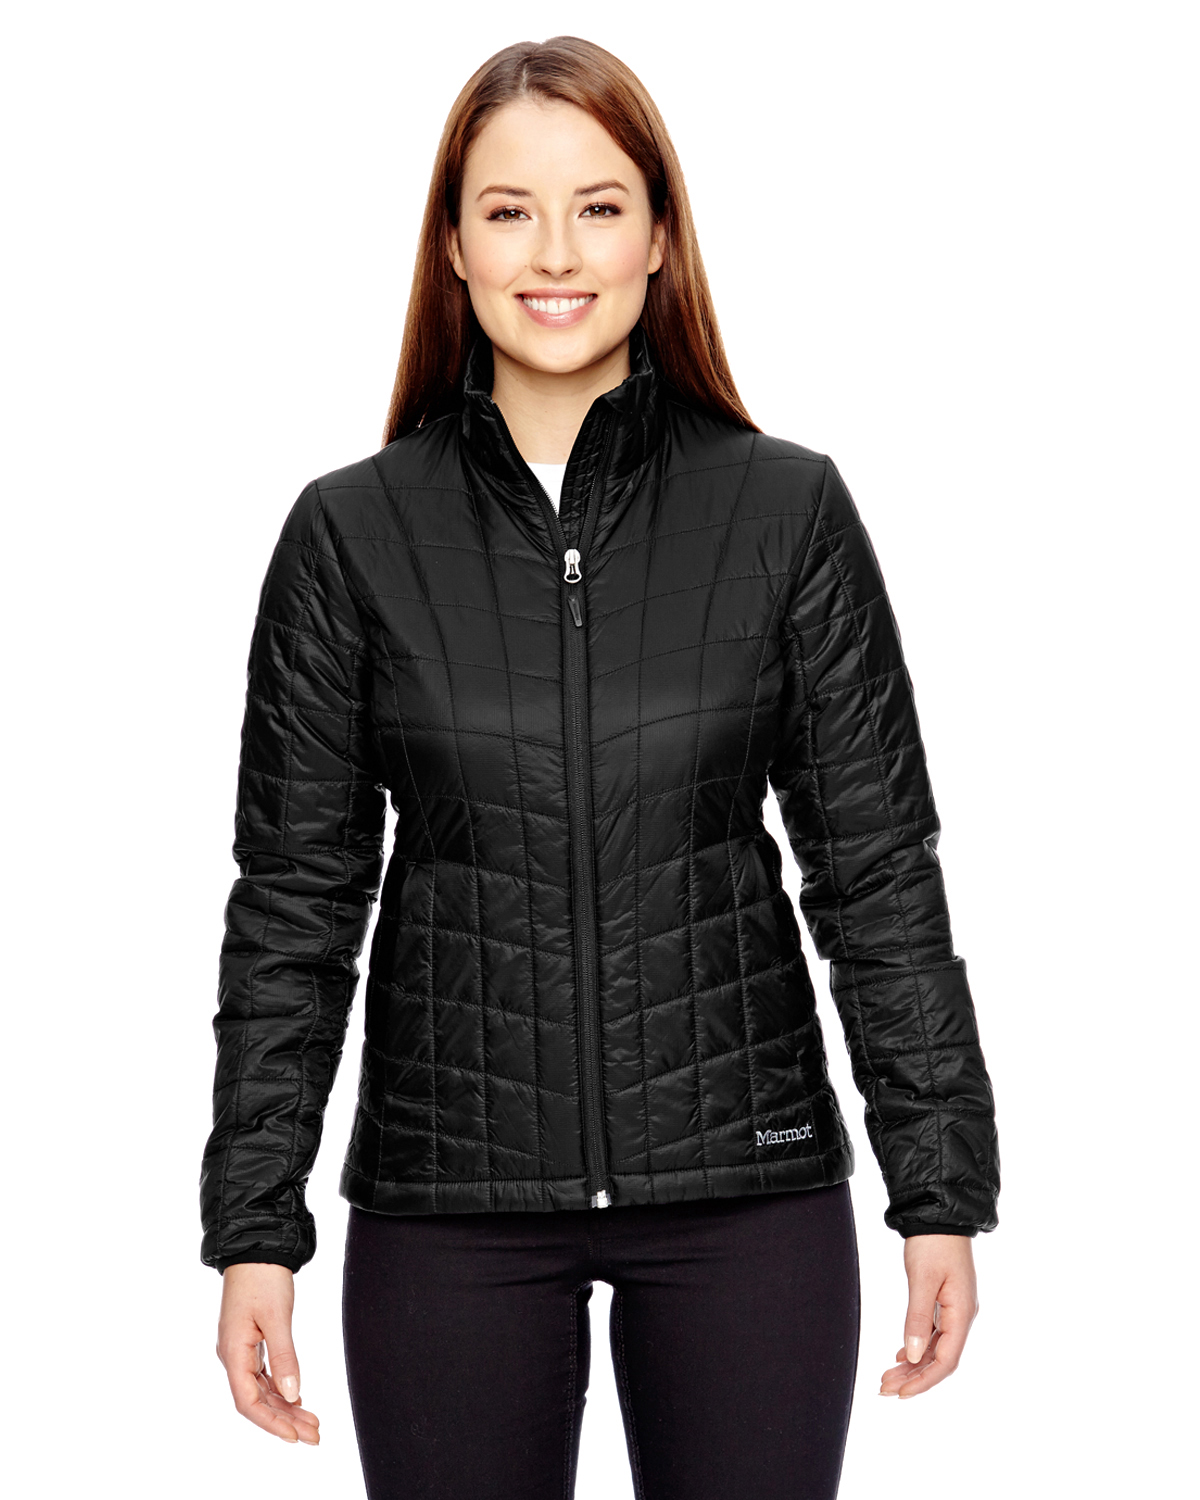 Marmot - 77970, Ladies' Calen Jacket, Embroidery, Screen Printing - Logo Masters International